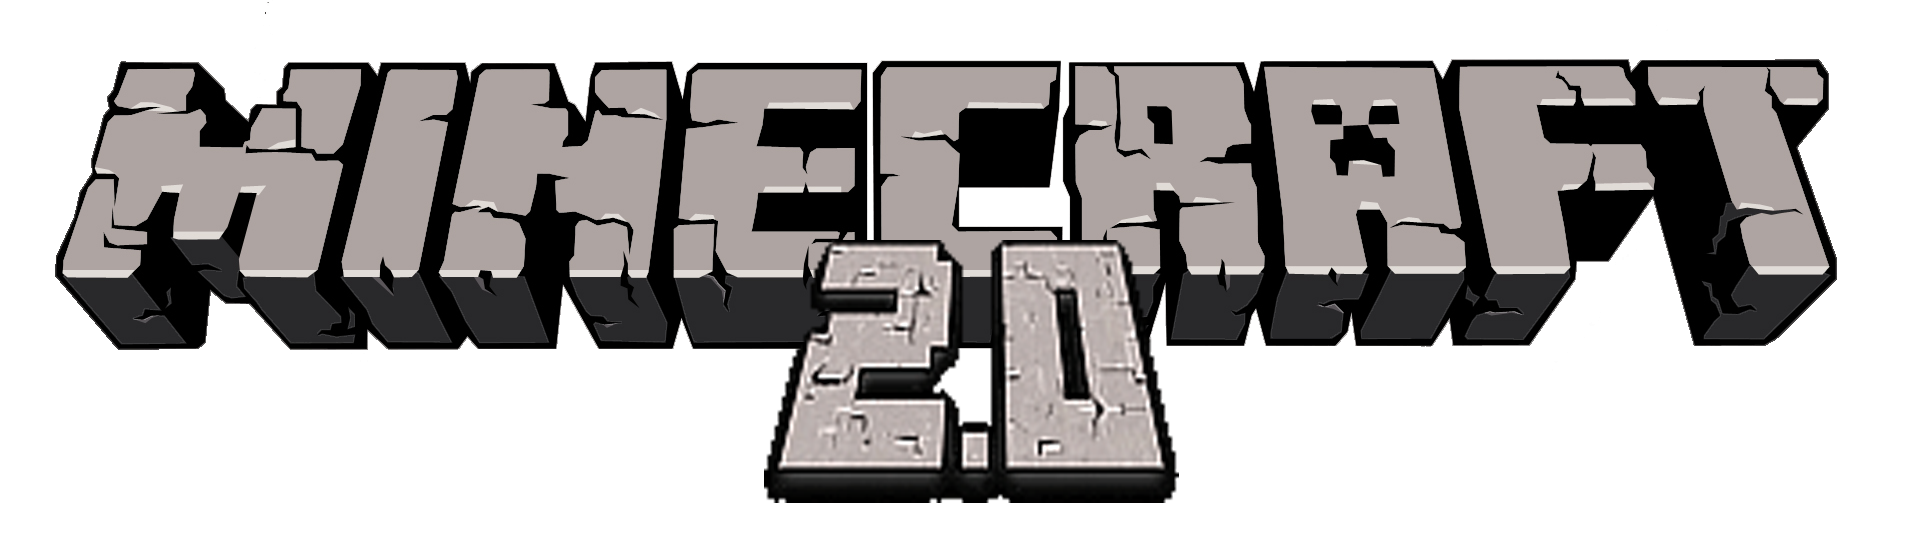 Minecraft 2 0 Fantendo Nintendo Fanon Wiki Fandom Powered By Wikia